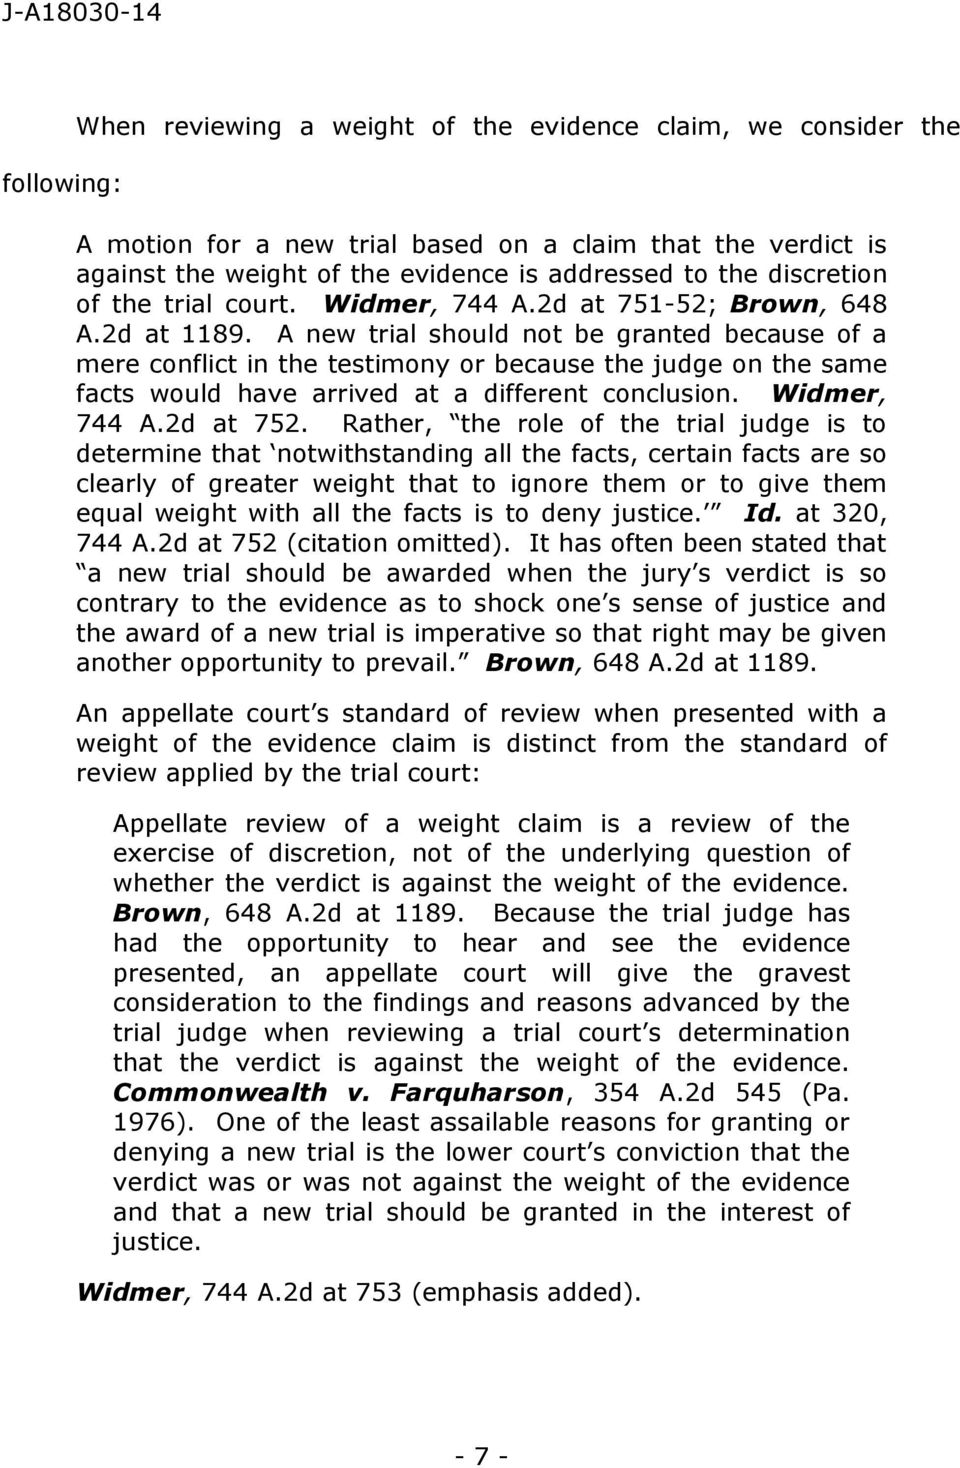 A new trial should not be granted because of a mere conflict in the testimony or because the judge on the same facts would have arrived at a different conclusion. Widmer, 744 A.2d at 752.